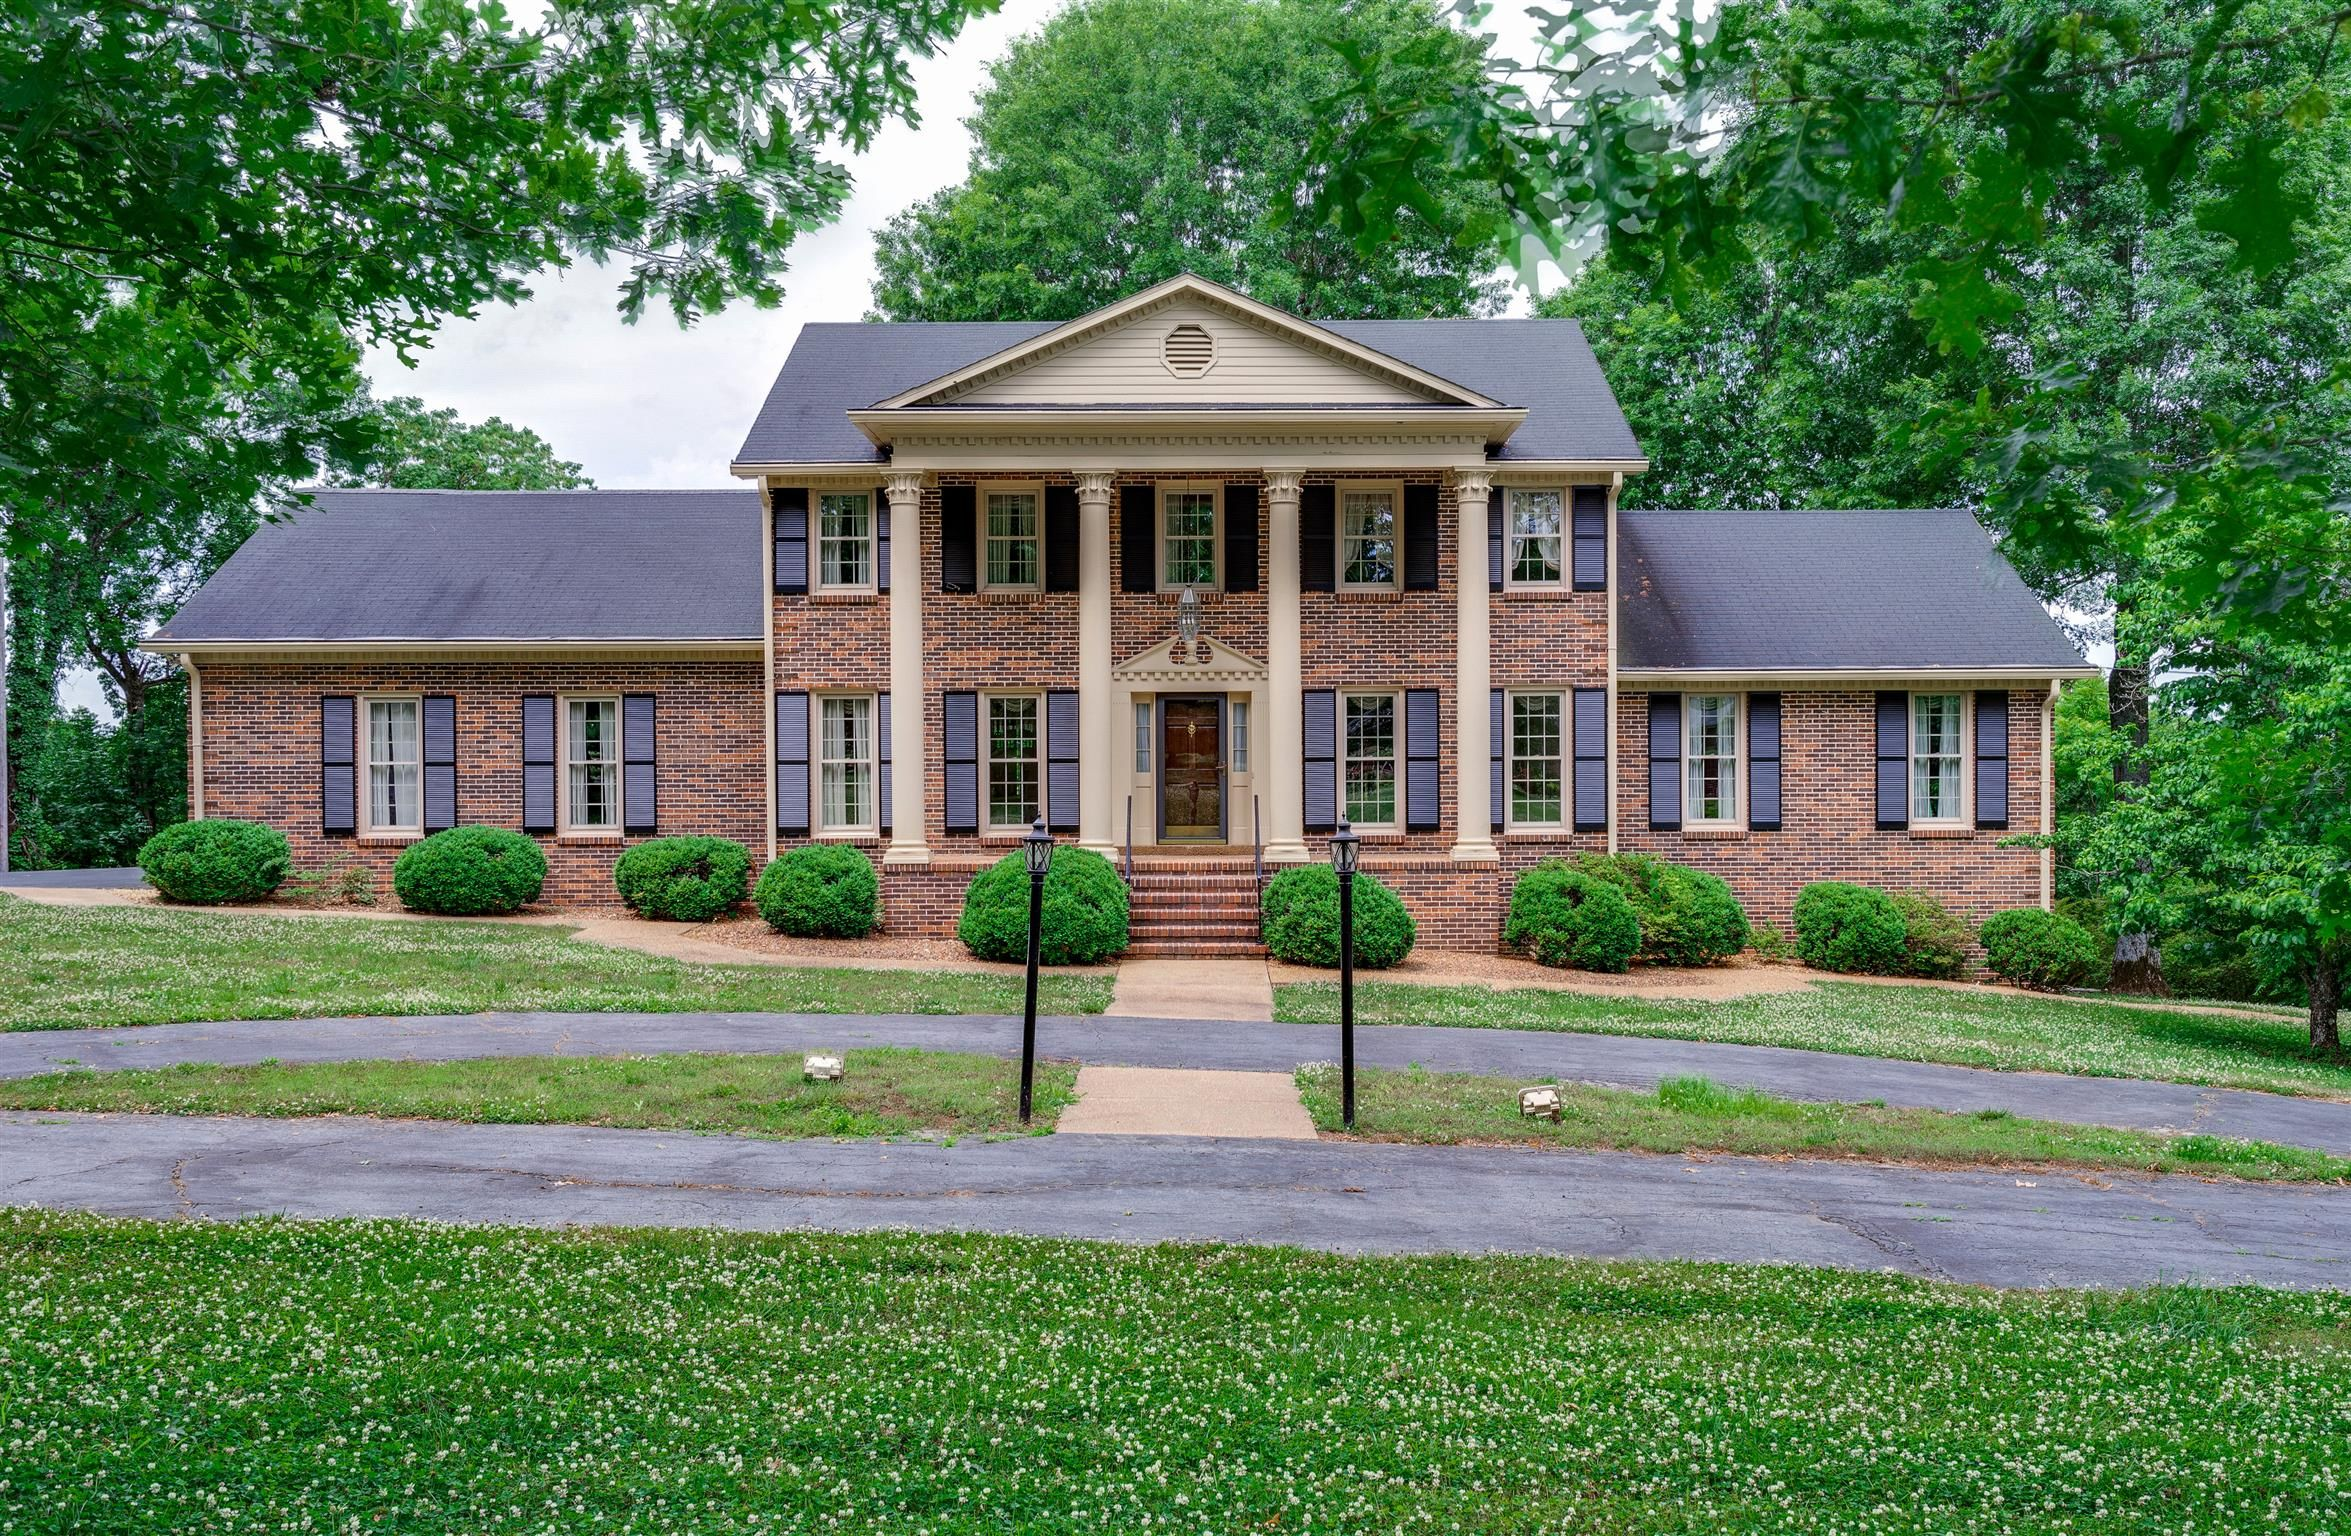 113 Jefferson Dr Columbia Tn 38401 4 Bed 4 5 Bath 484 900 This Is A Fantastic House Styles Architecture Mansions